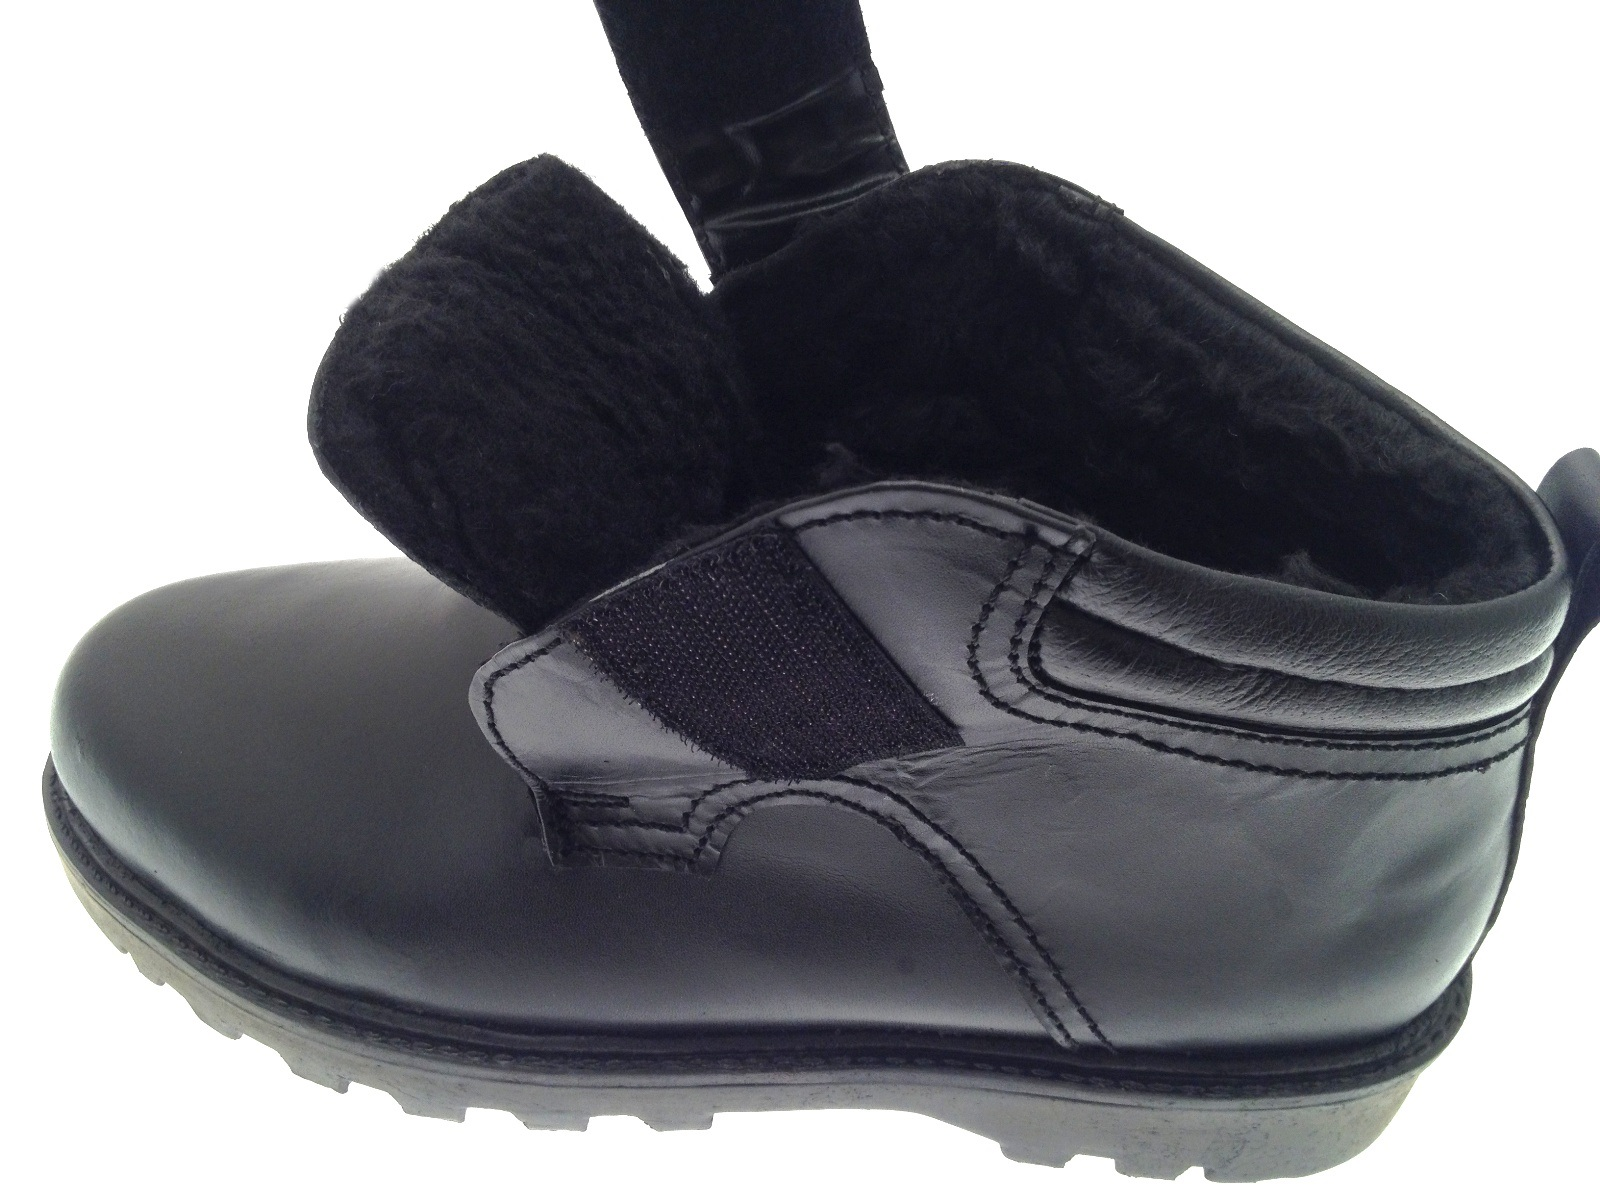 mens genuine leather fleece lined ankle boots snow winter